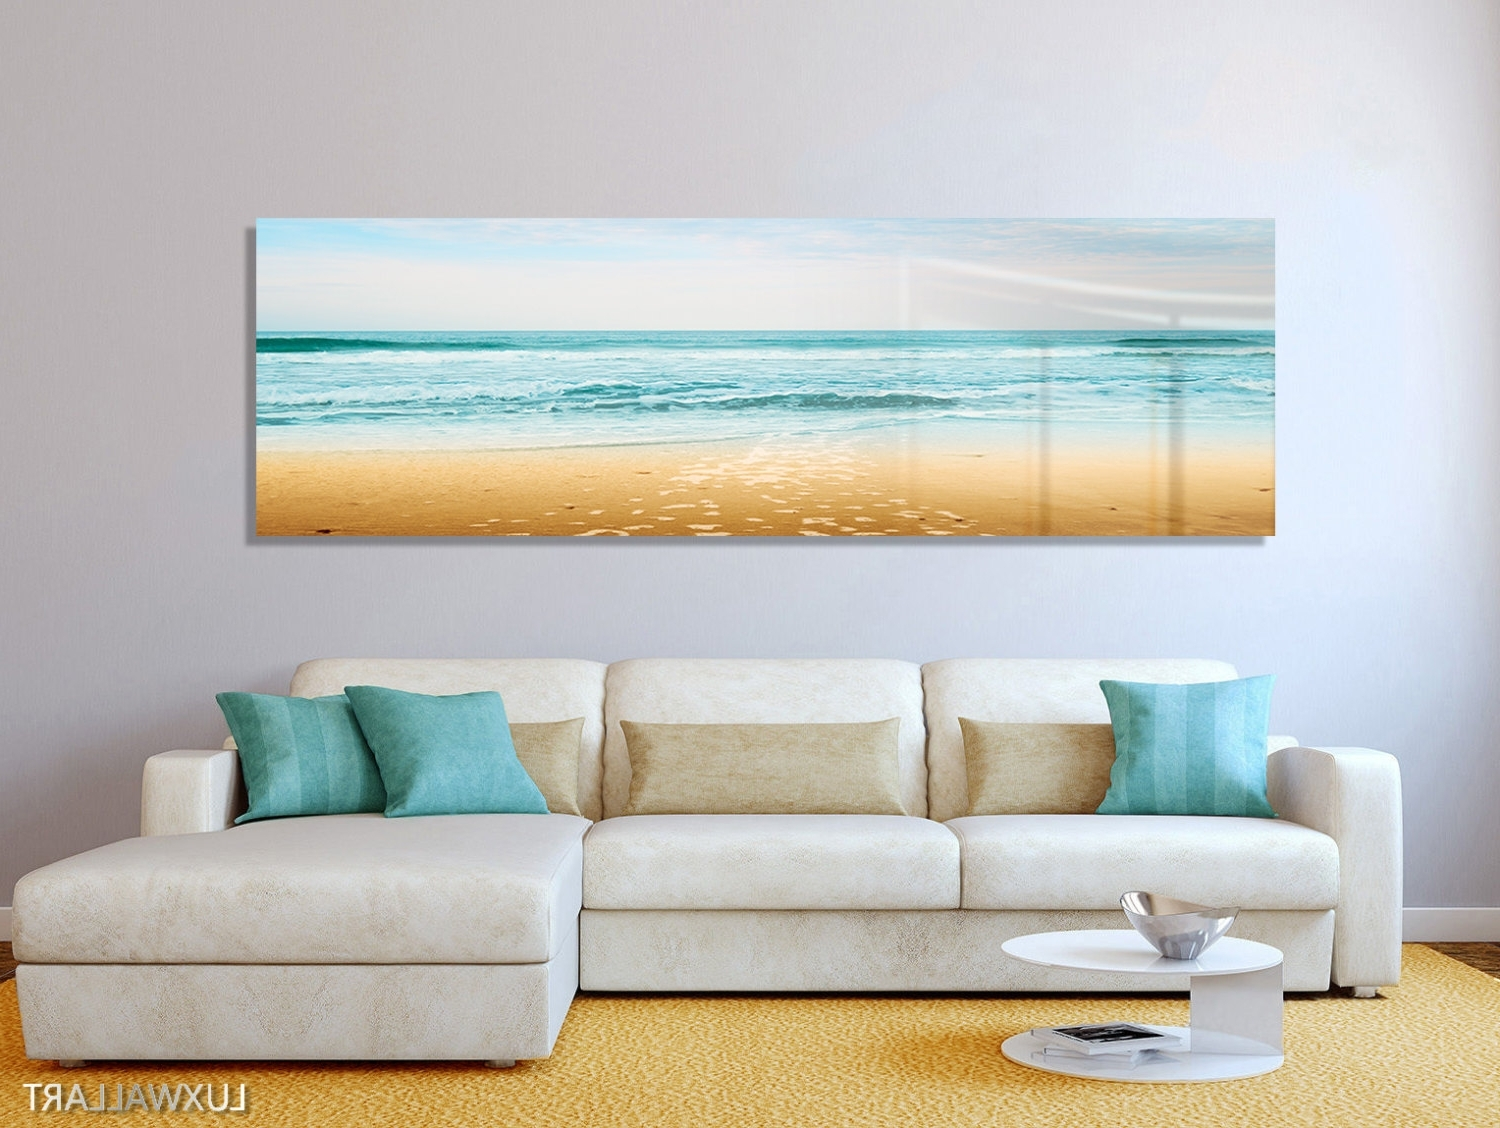 Panoramic Wall Art For Best And Newest Turquoise Beach Ocean Panoramic Modern Contemporary Hd Metal (View 6 of 15)